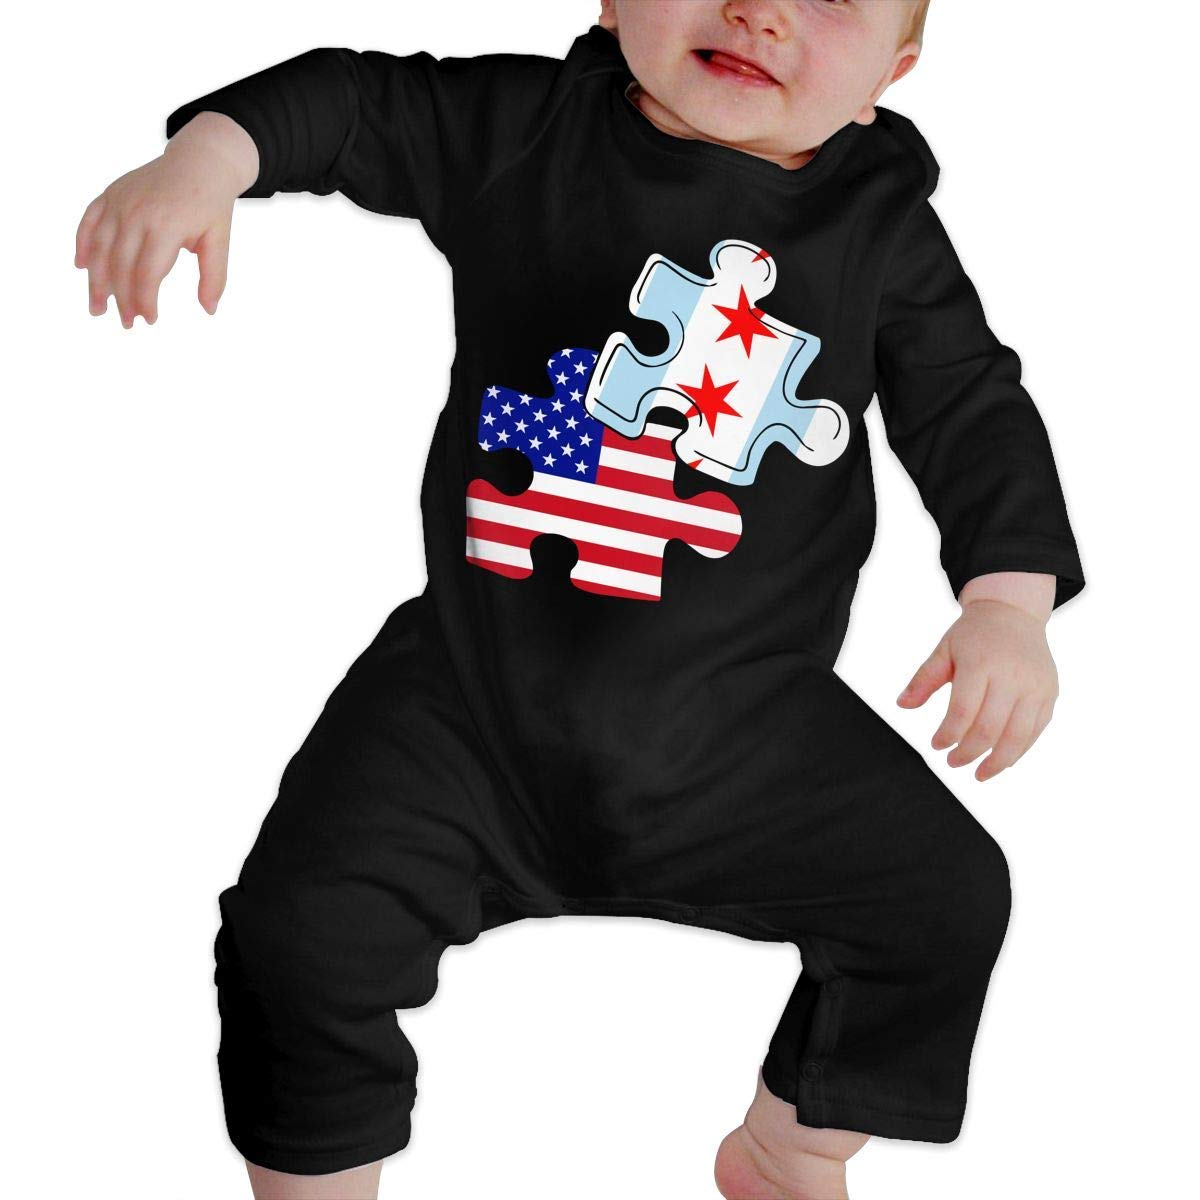 TYLER DEAN Newborn Baby Coverall Chicago American Flag Puzzle Piece Toddler Jumpsuit